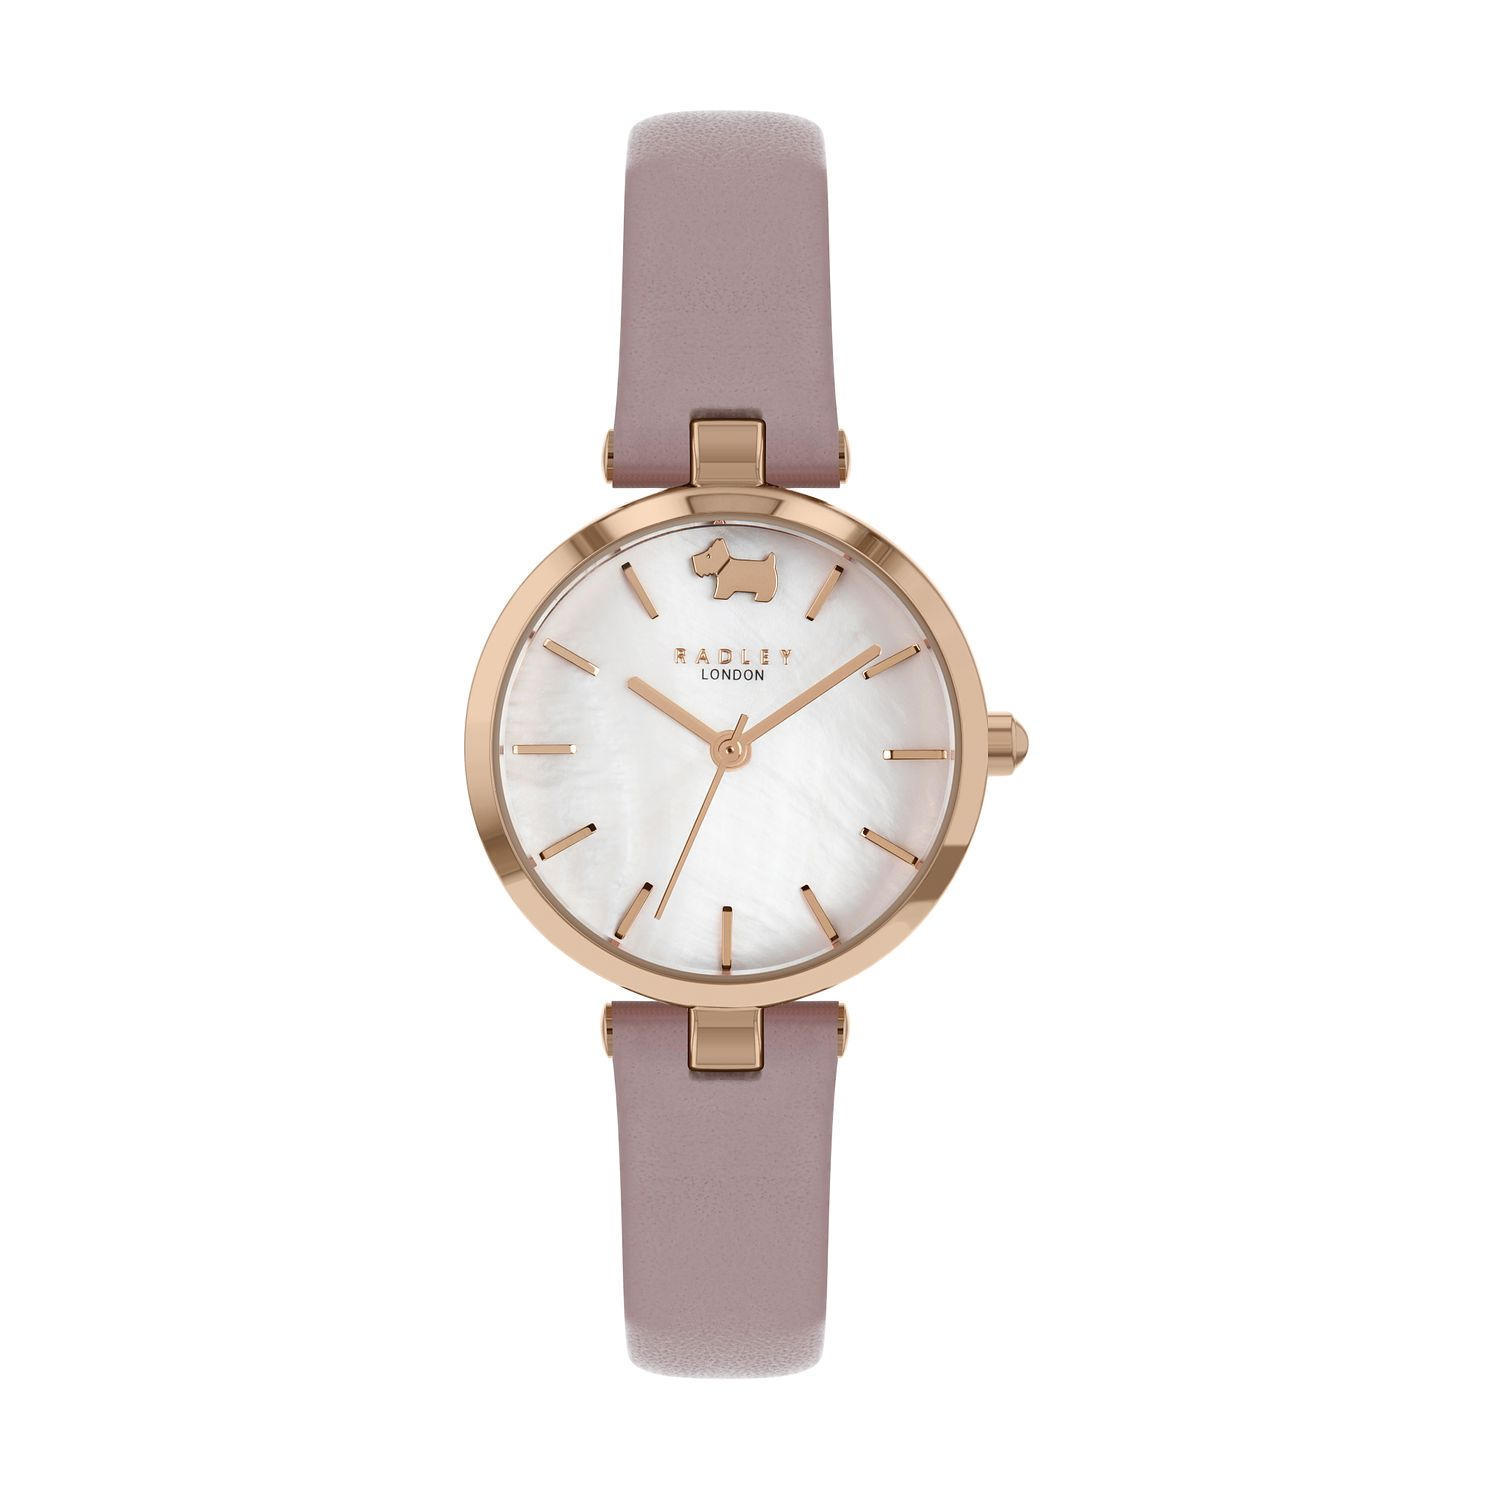 Radley West View Ladies' Pink Leather Strap Watch - Product number 5085756